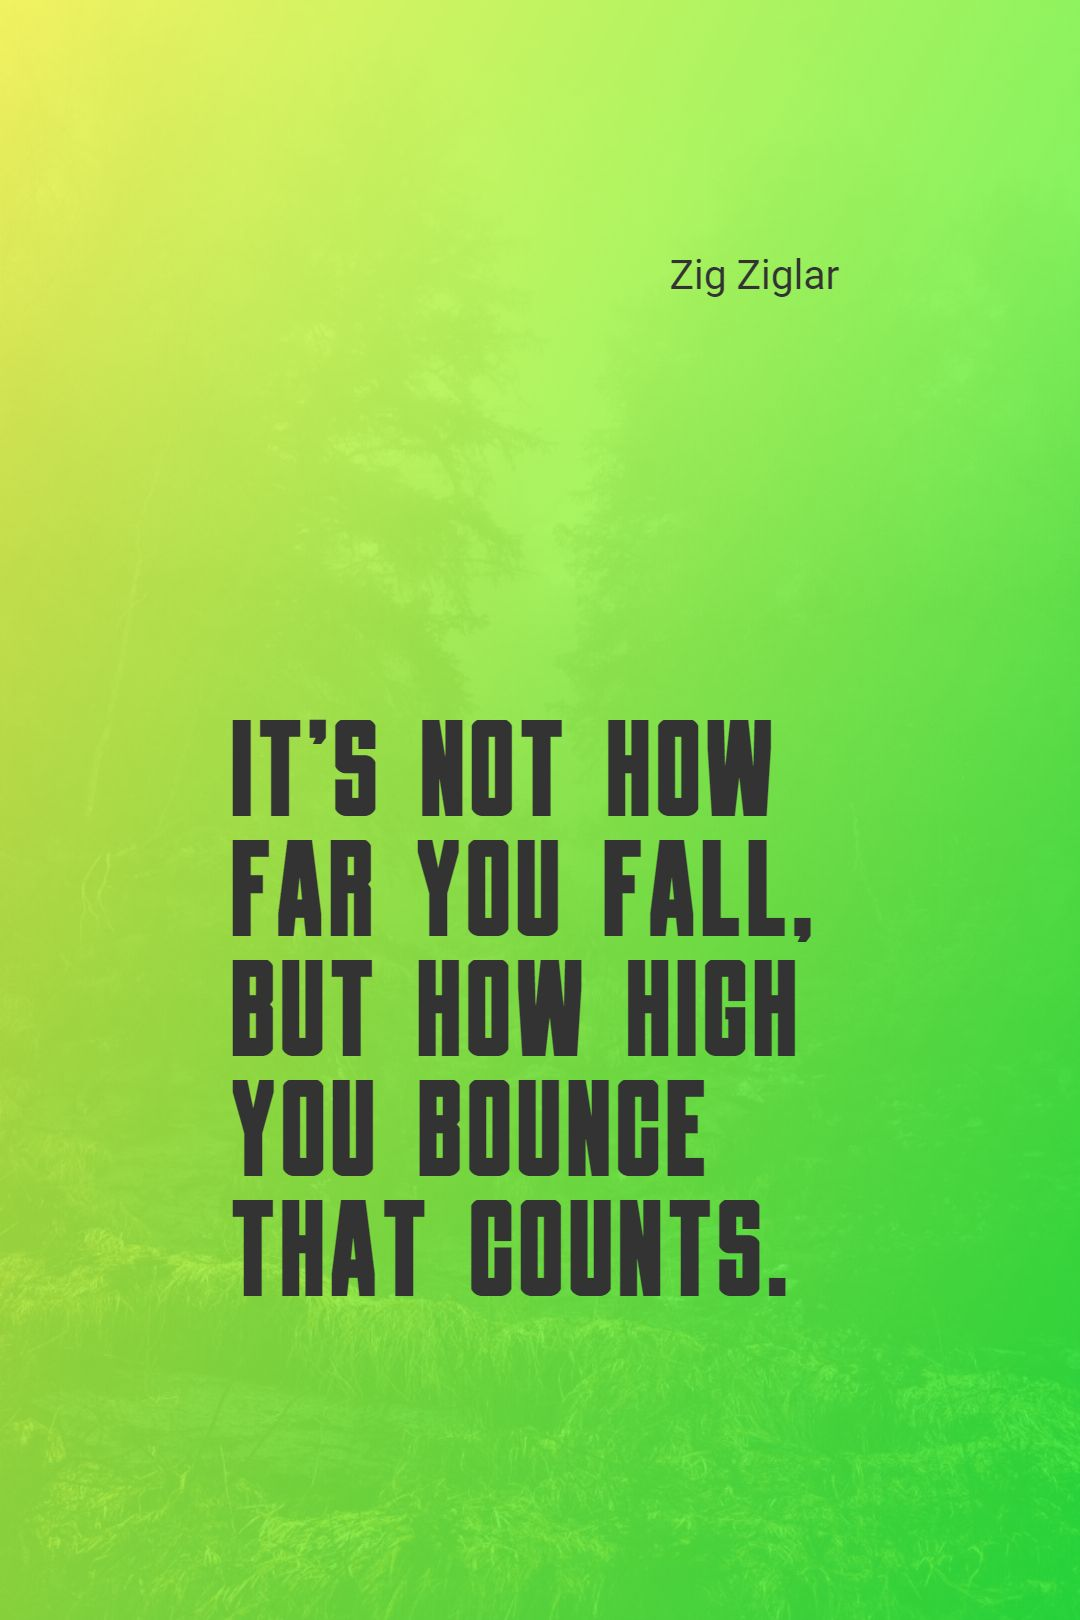 Quotes image of it's not how far you fall, but how high you bounce that counts.